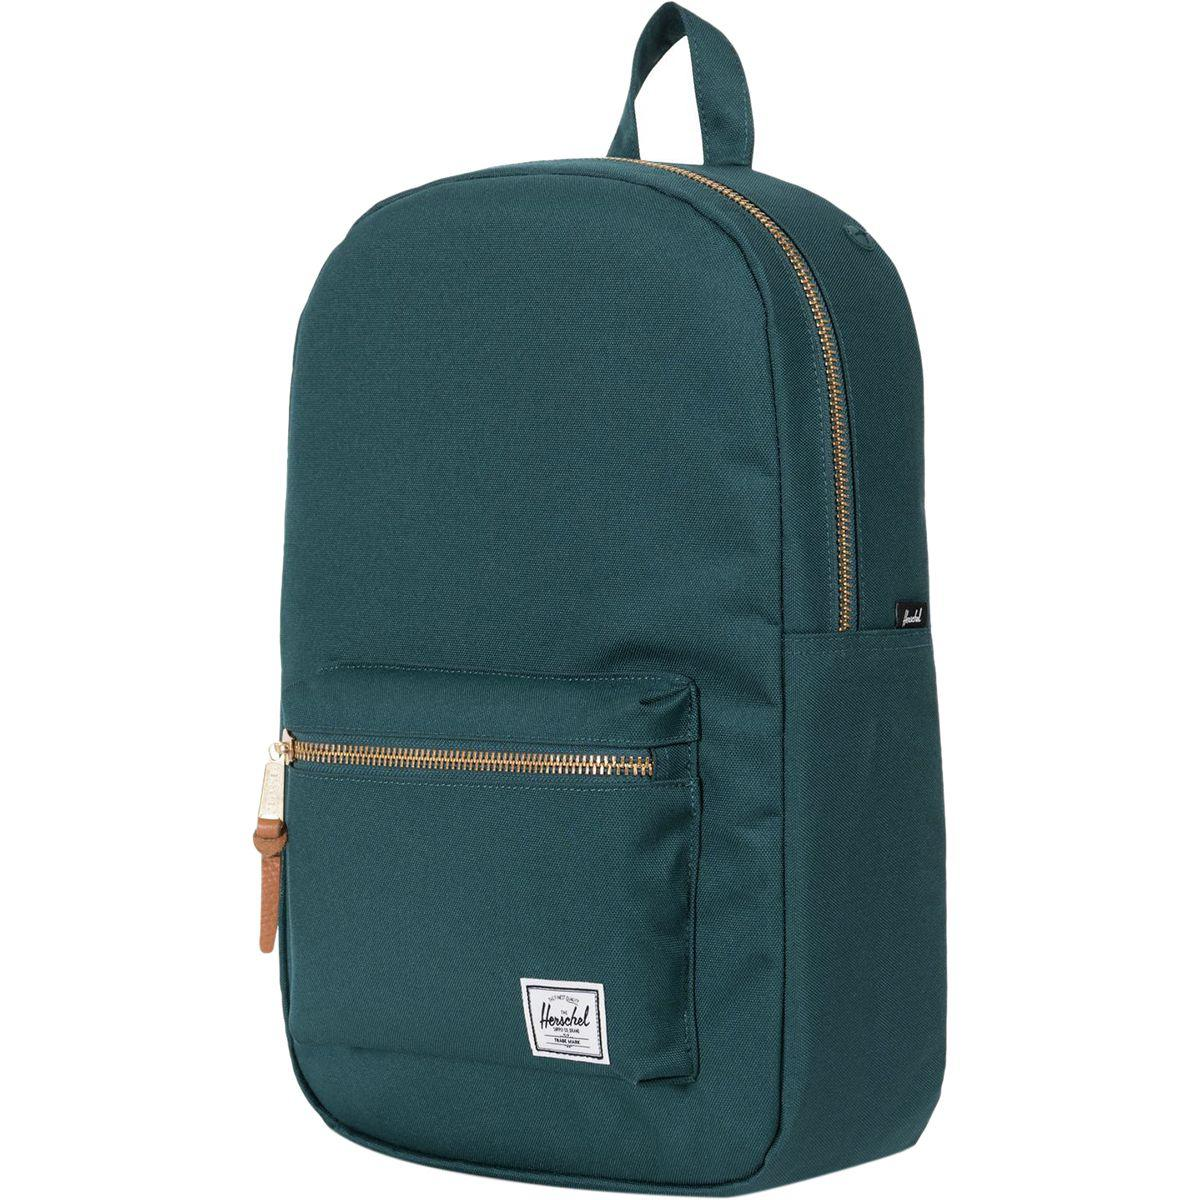 ca71c8eb51 Lyst - Herschel Supply Co. Settlement Mid-volume 17l Backpack in ...